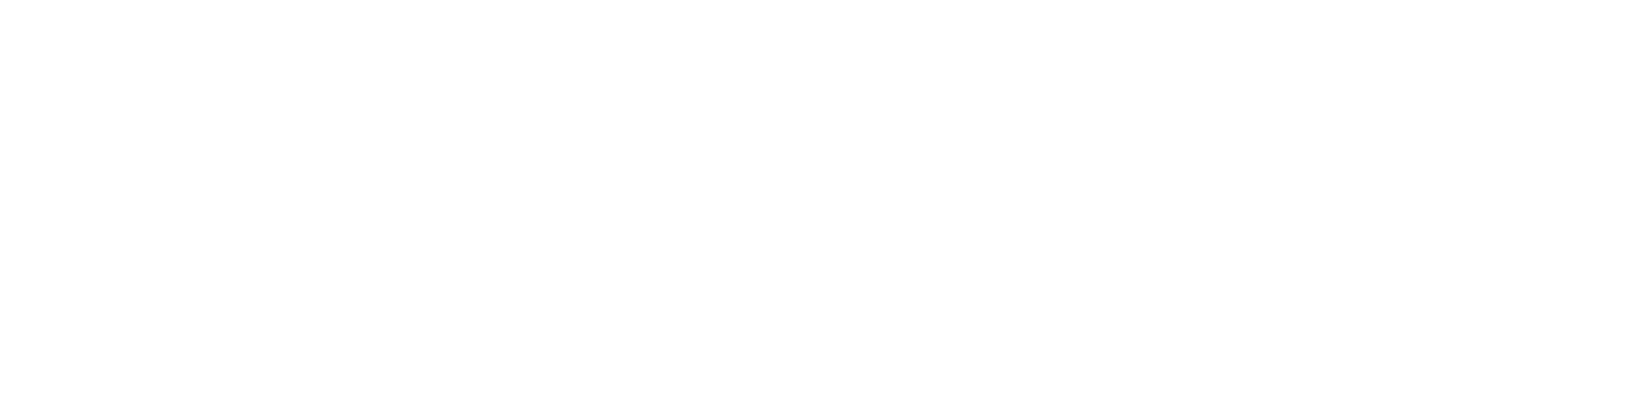 Silver Star Industries